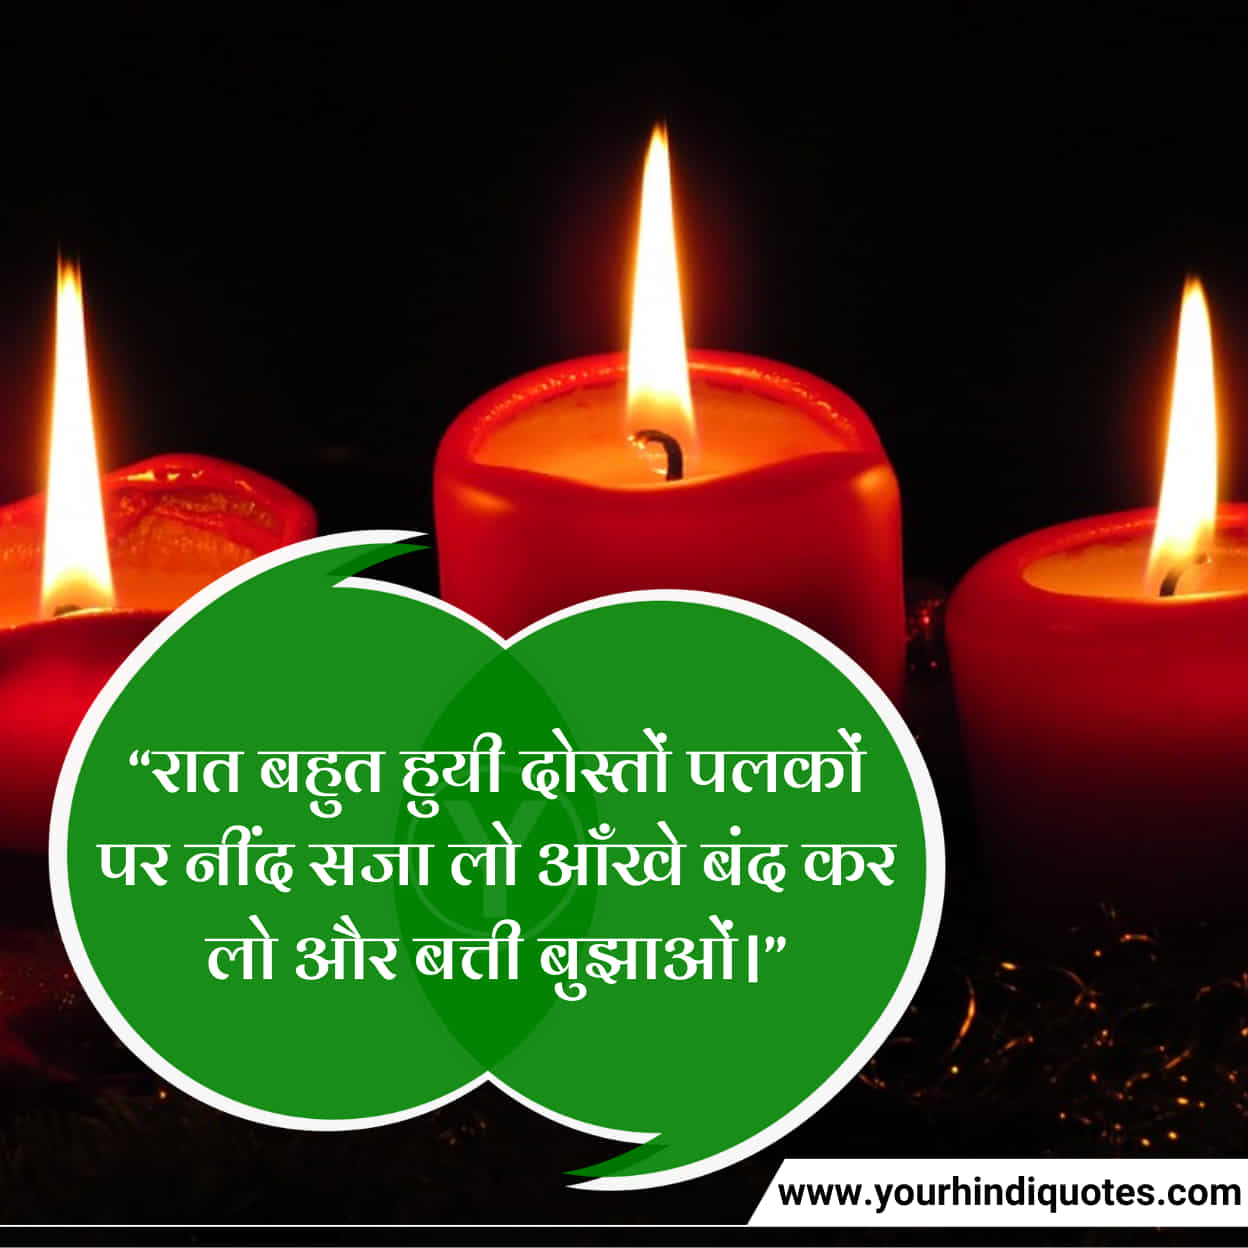 Hindi Good Night Quotes For Love